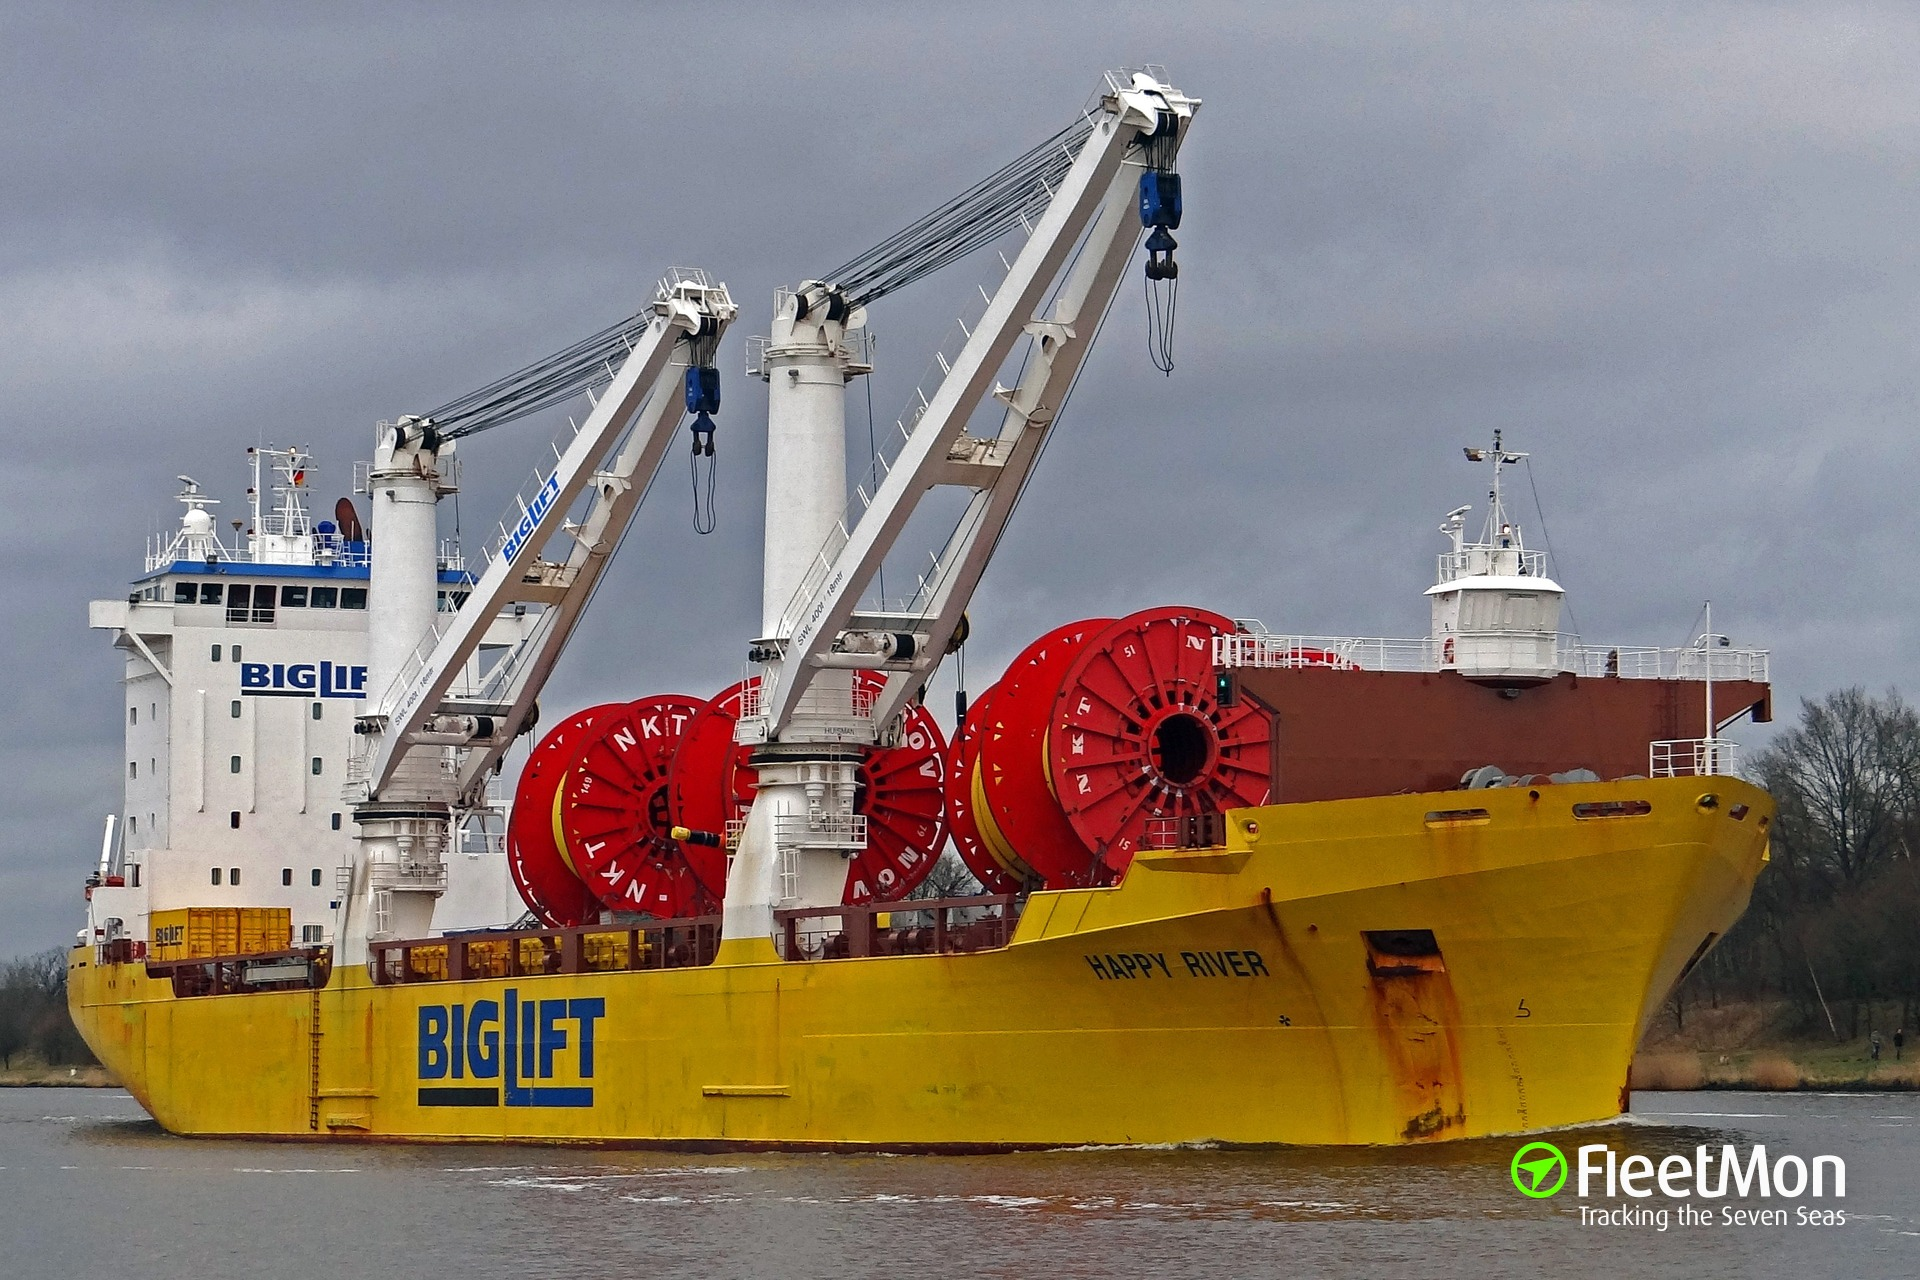 Dutch heavy lift HAPPY RIVER under tow in the Atlantic